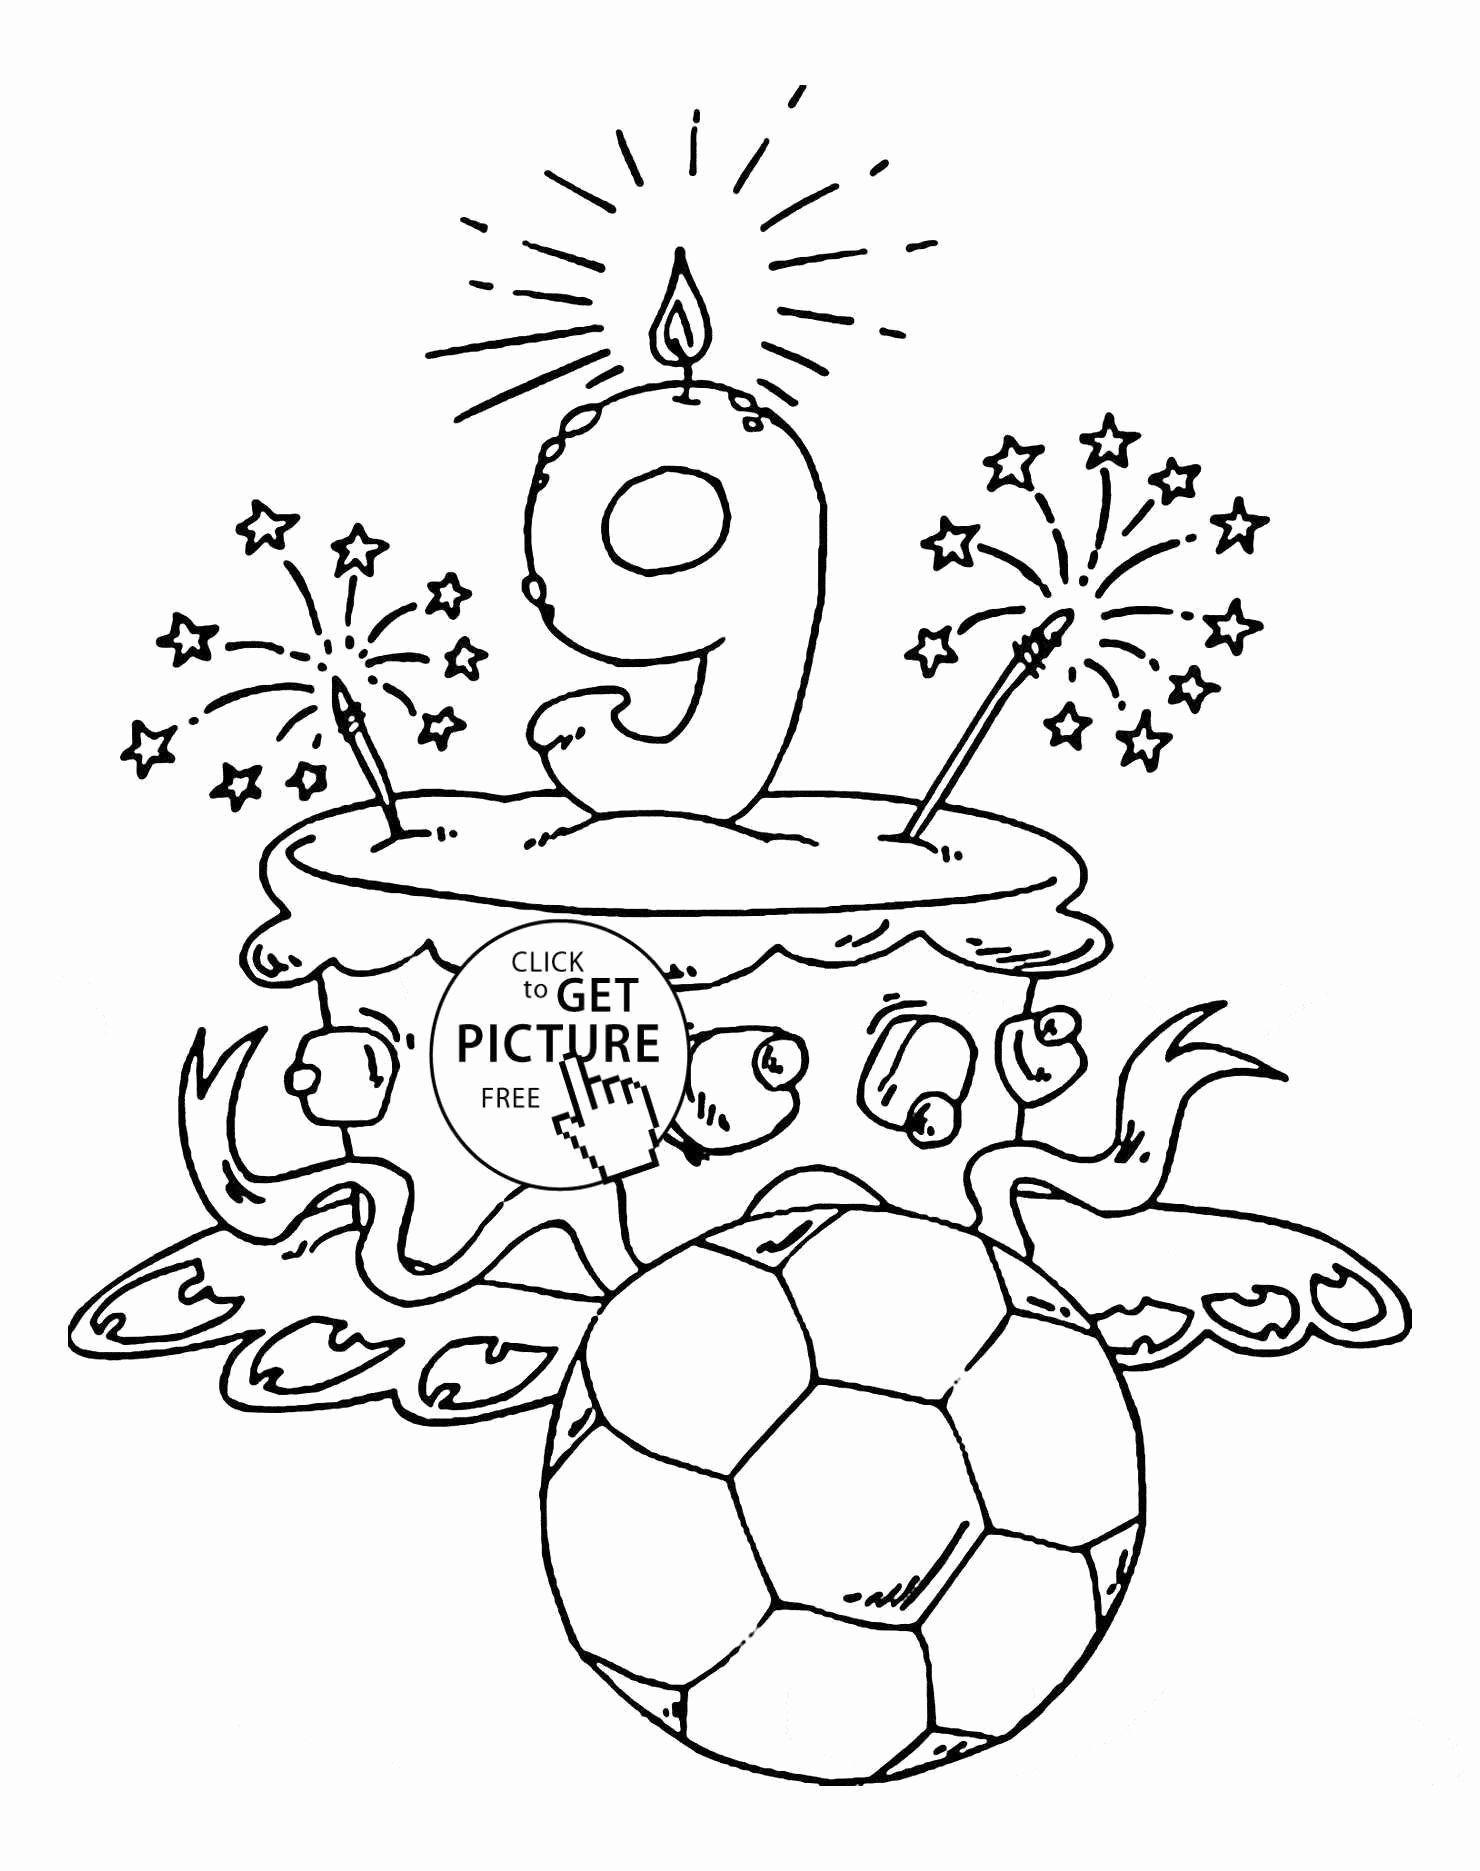 spiderman happy birthday coloring pages pin on coloring pages to print birthday happy coloring pages spiderman